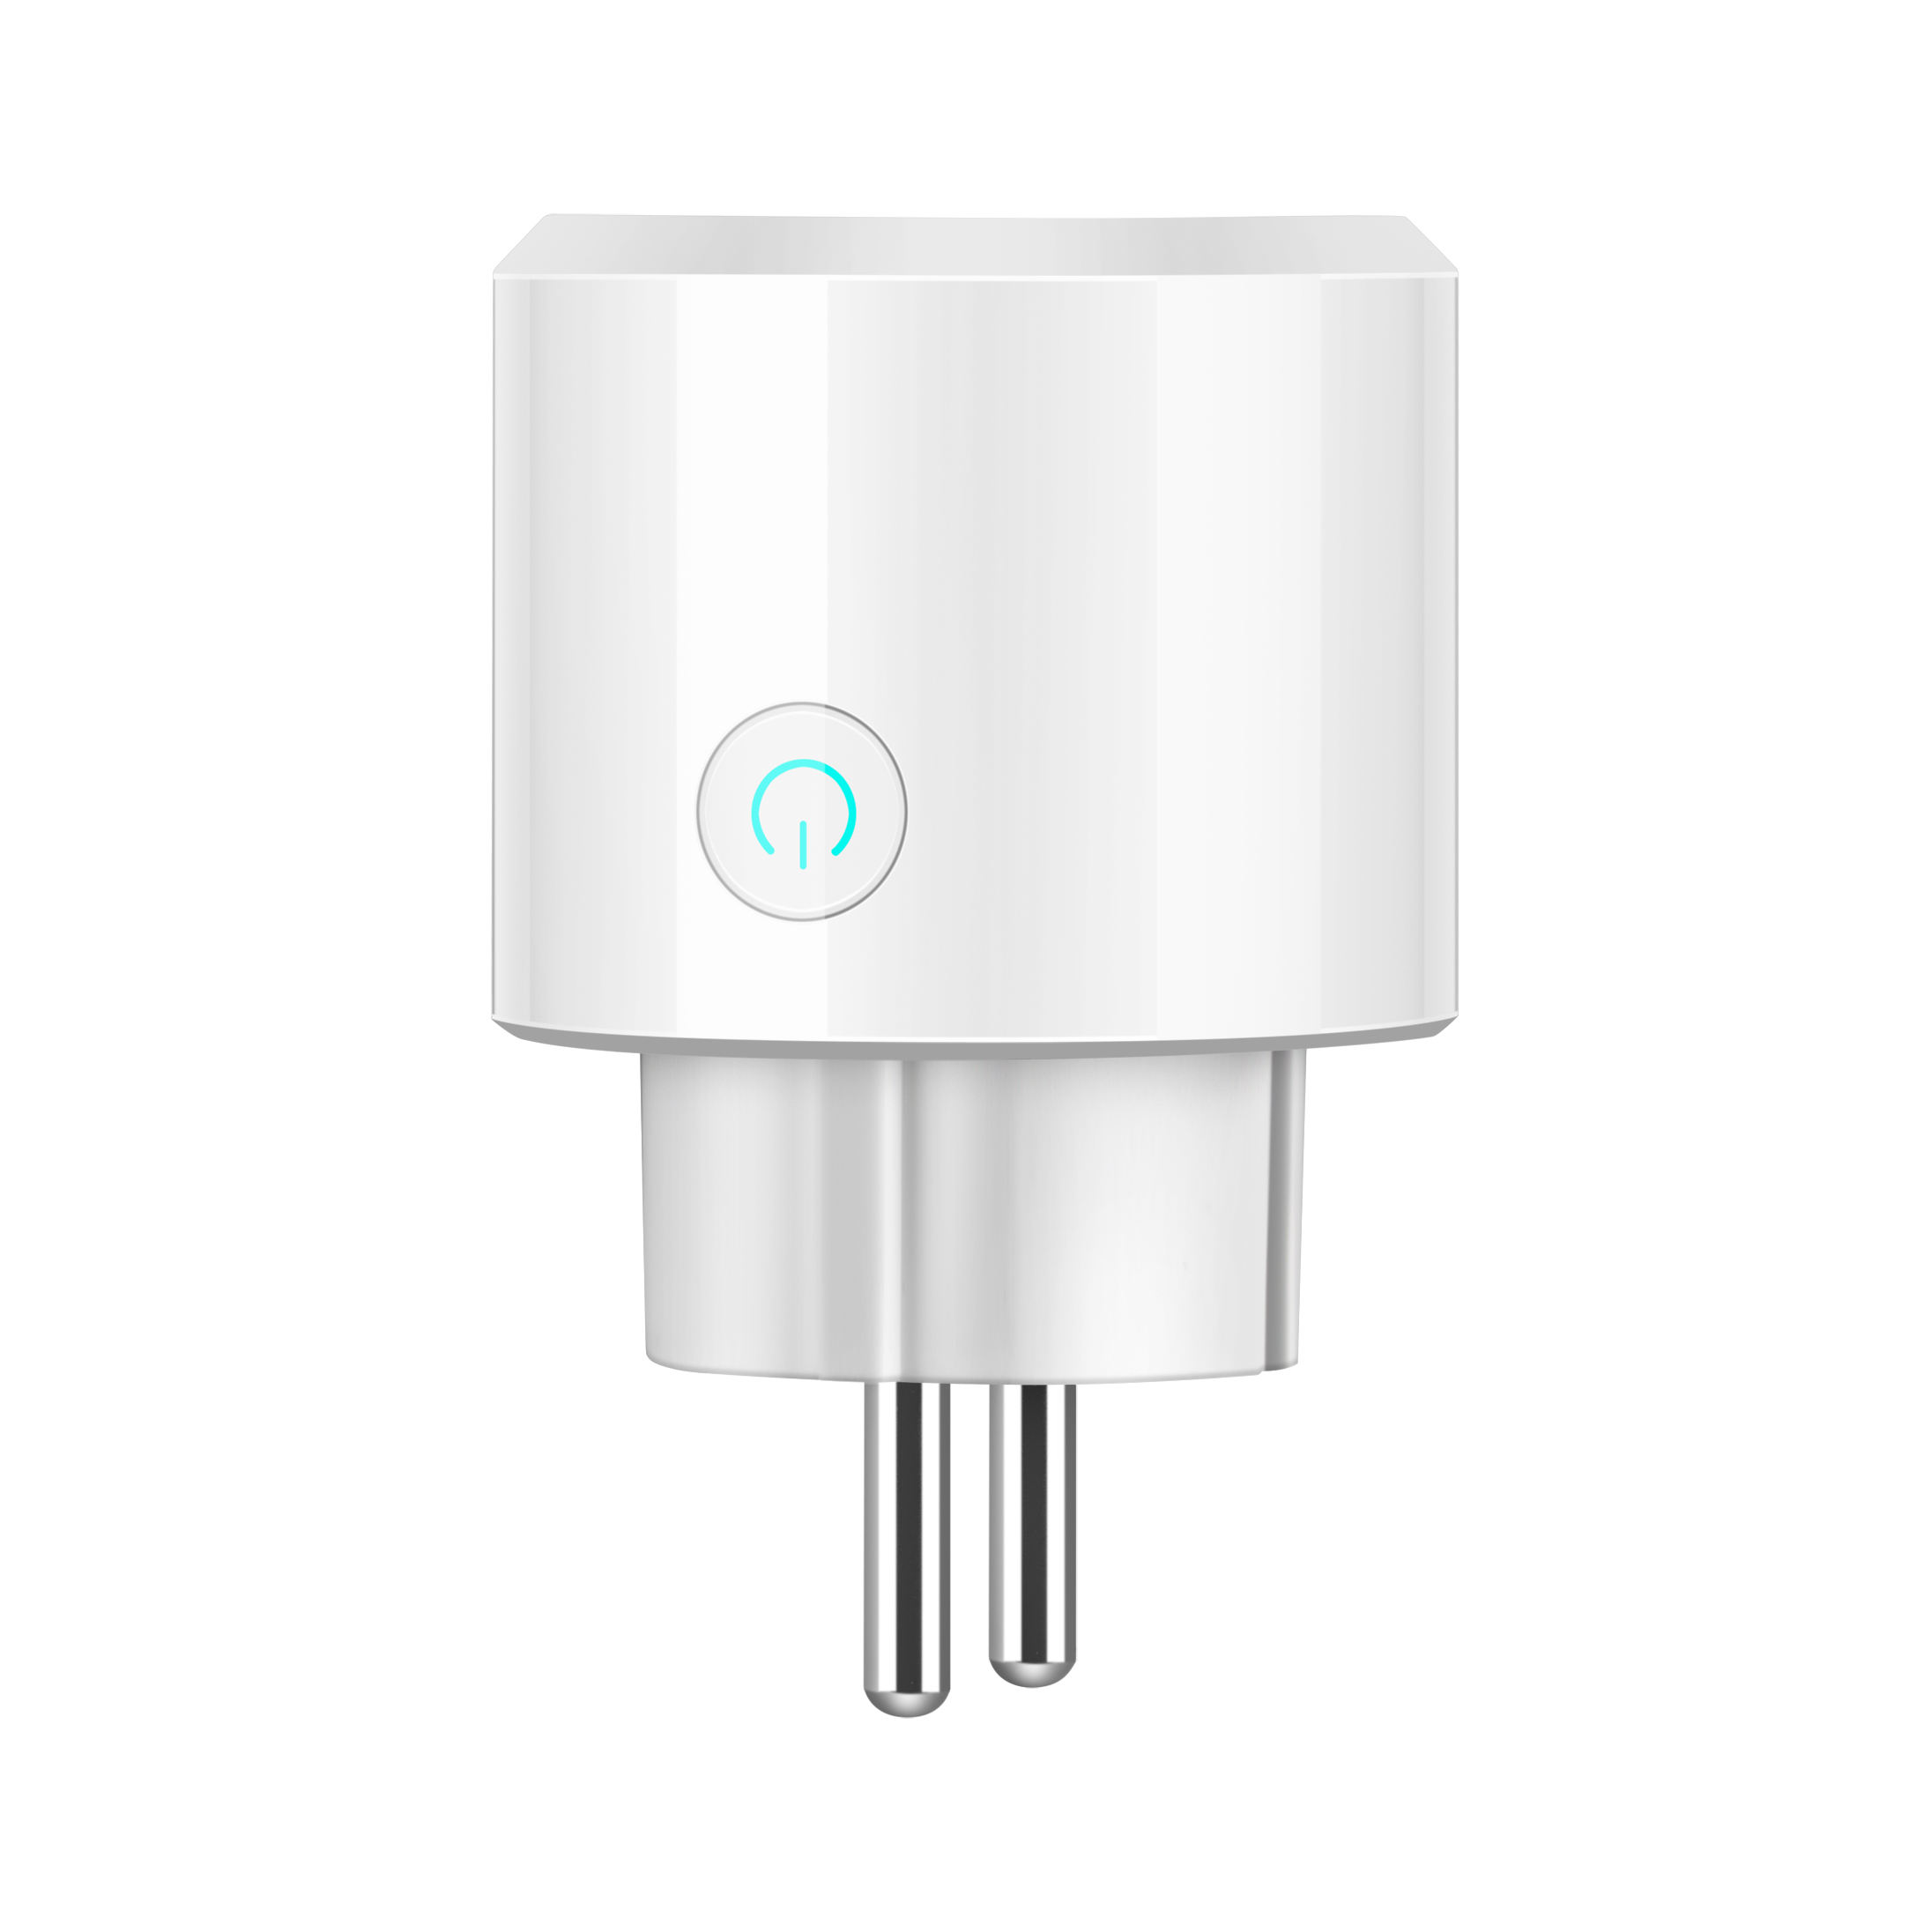 EU European WiFi Enabled Plug Current 16A With Timer Function